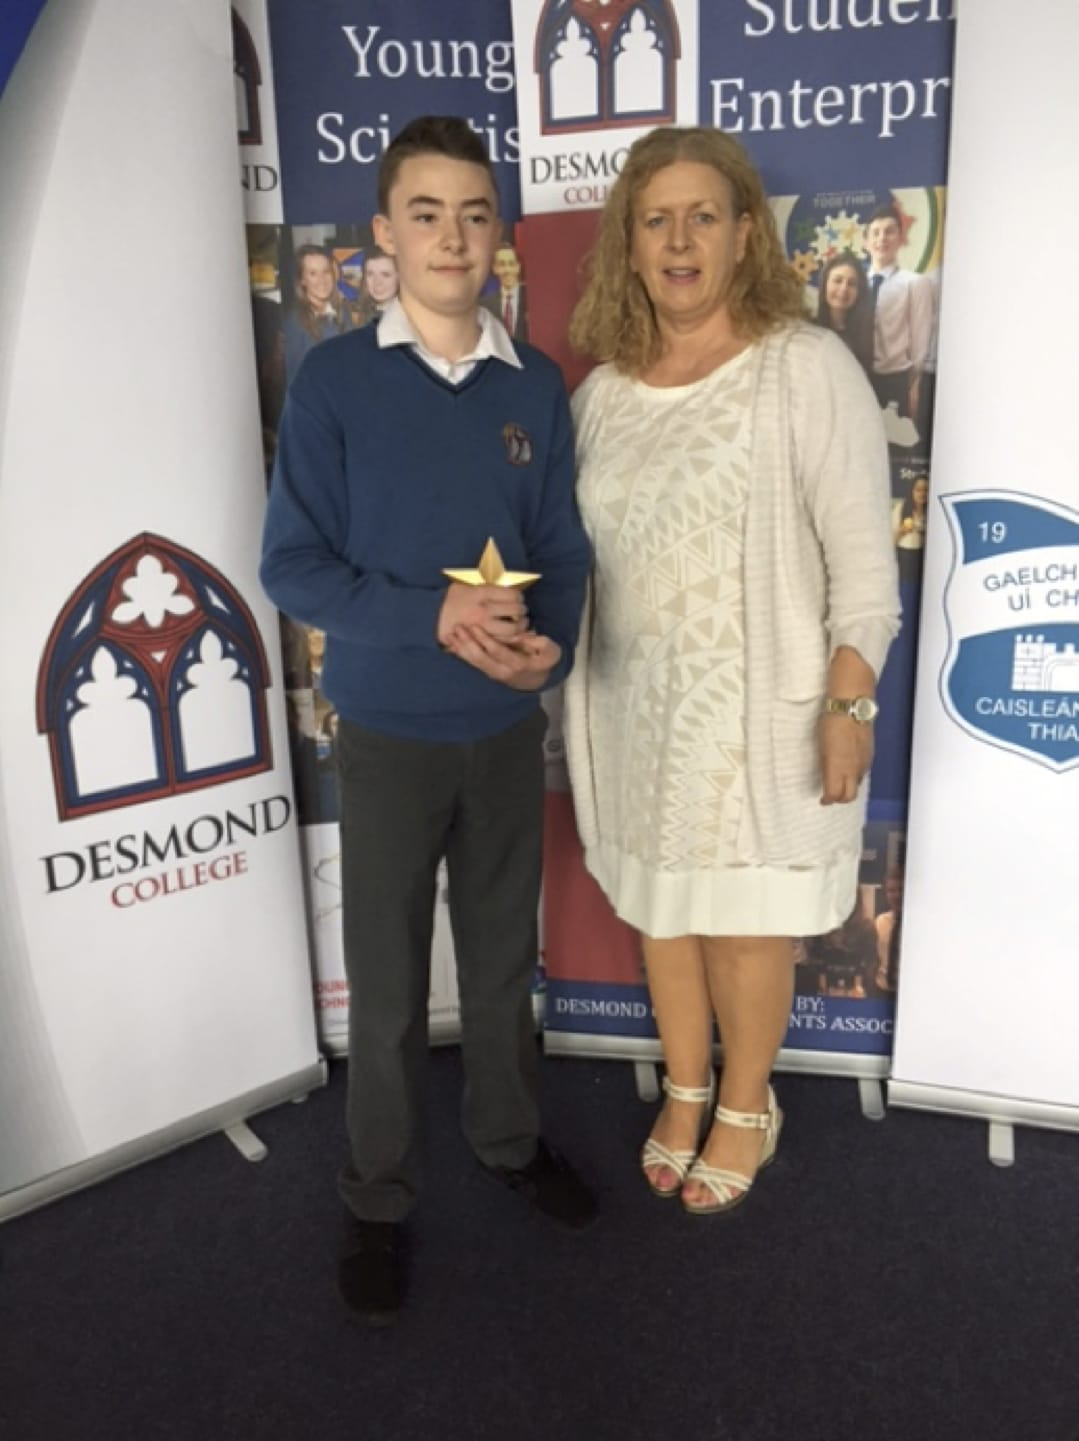 May 2017: Desmond College Student Awards